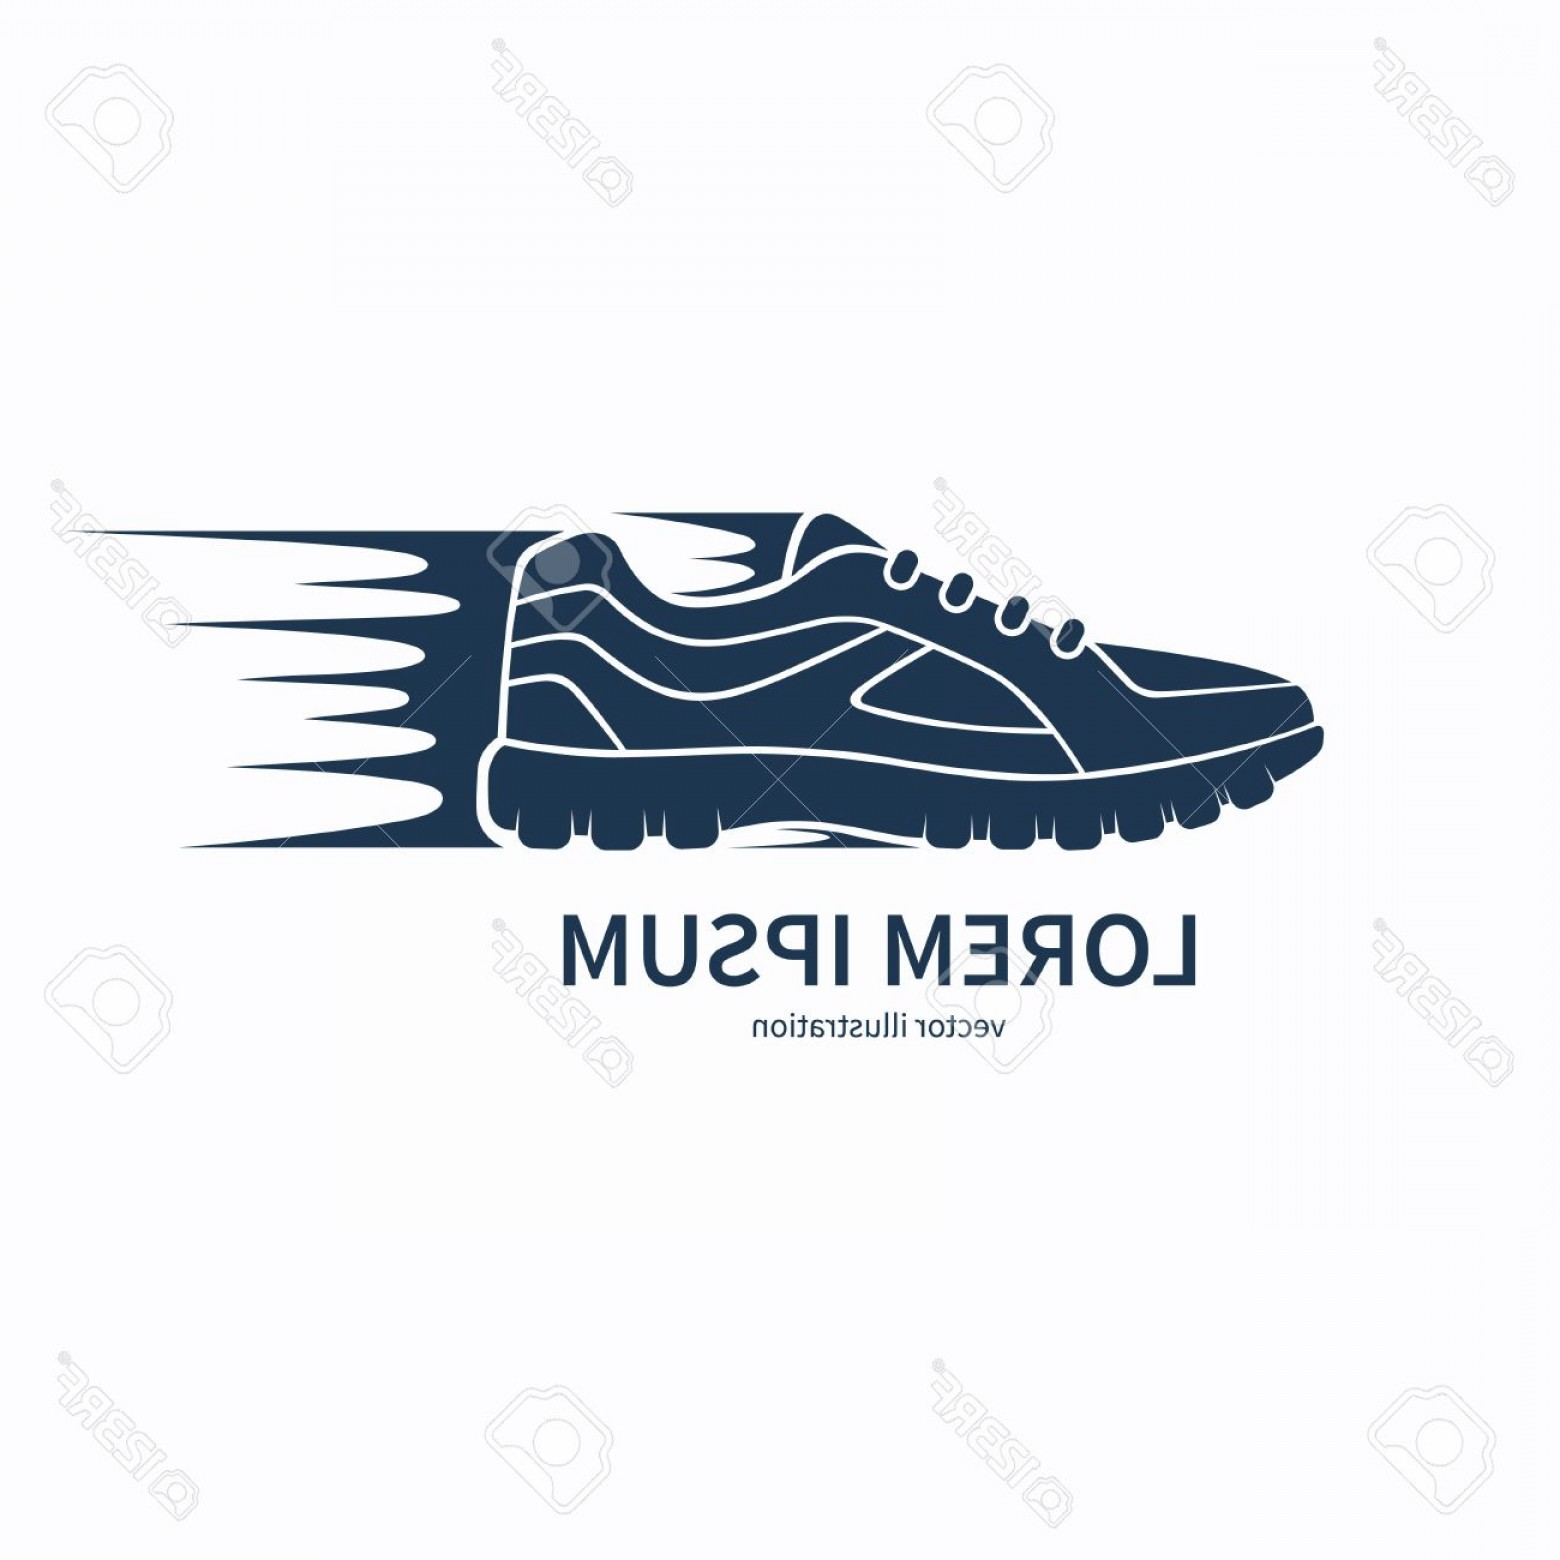 Sneaker Silhouette Vector: Photostock Vector Speeding Running Shoe Icon Symbol Or Logo Sneaker Or Sports Shoe Silhouette With Speed And Motion Tr